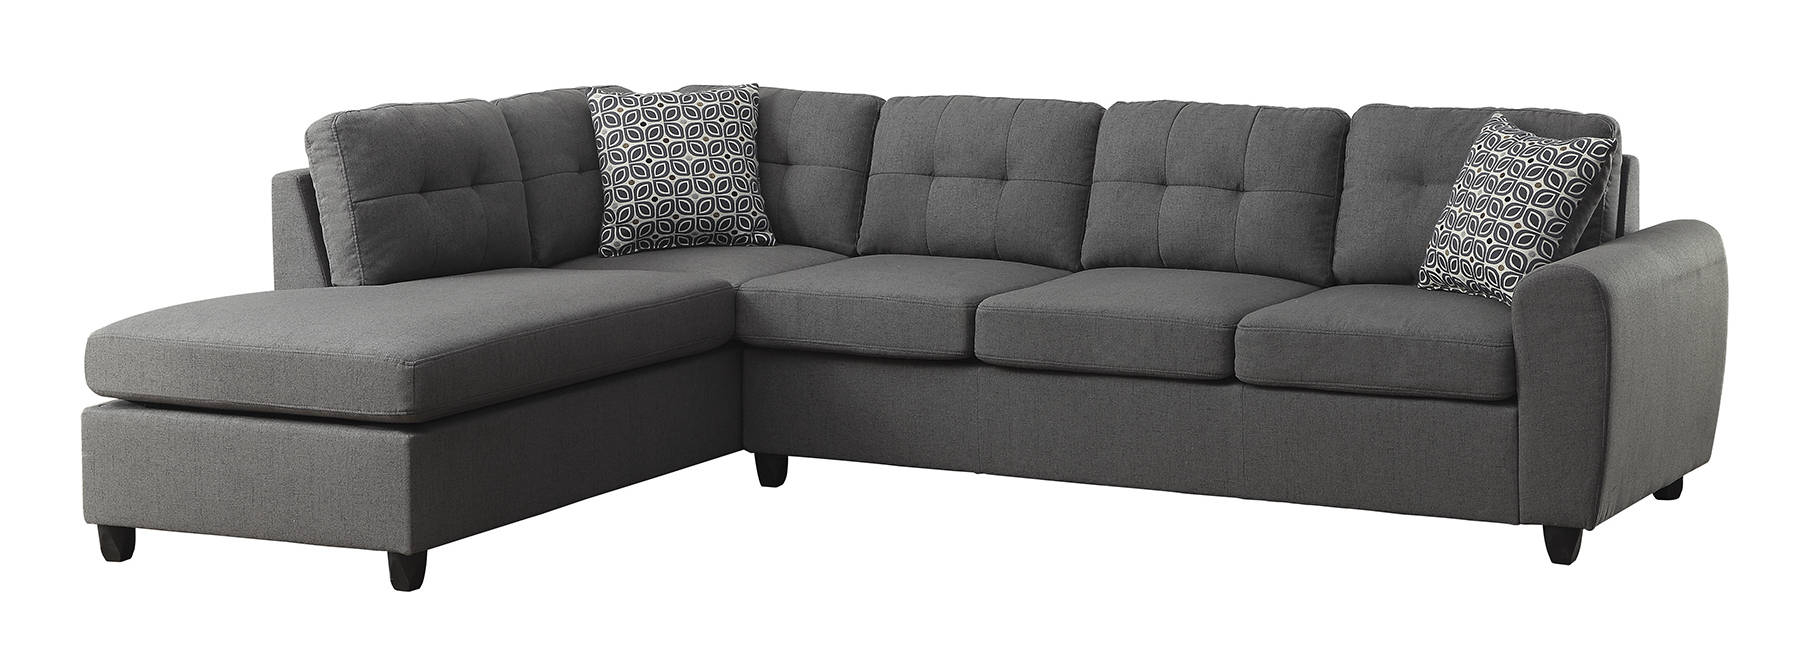 Well Liked Evan 2 Piece Sectionals With Raf Chaise Intended For Coaster Furniture Stonenesse Sectional (View 3 of 20)